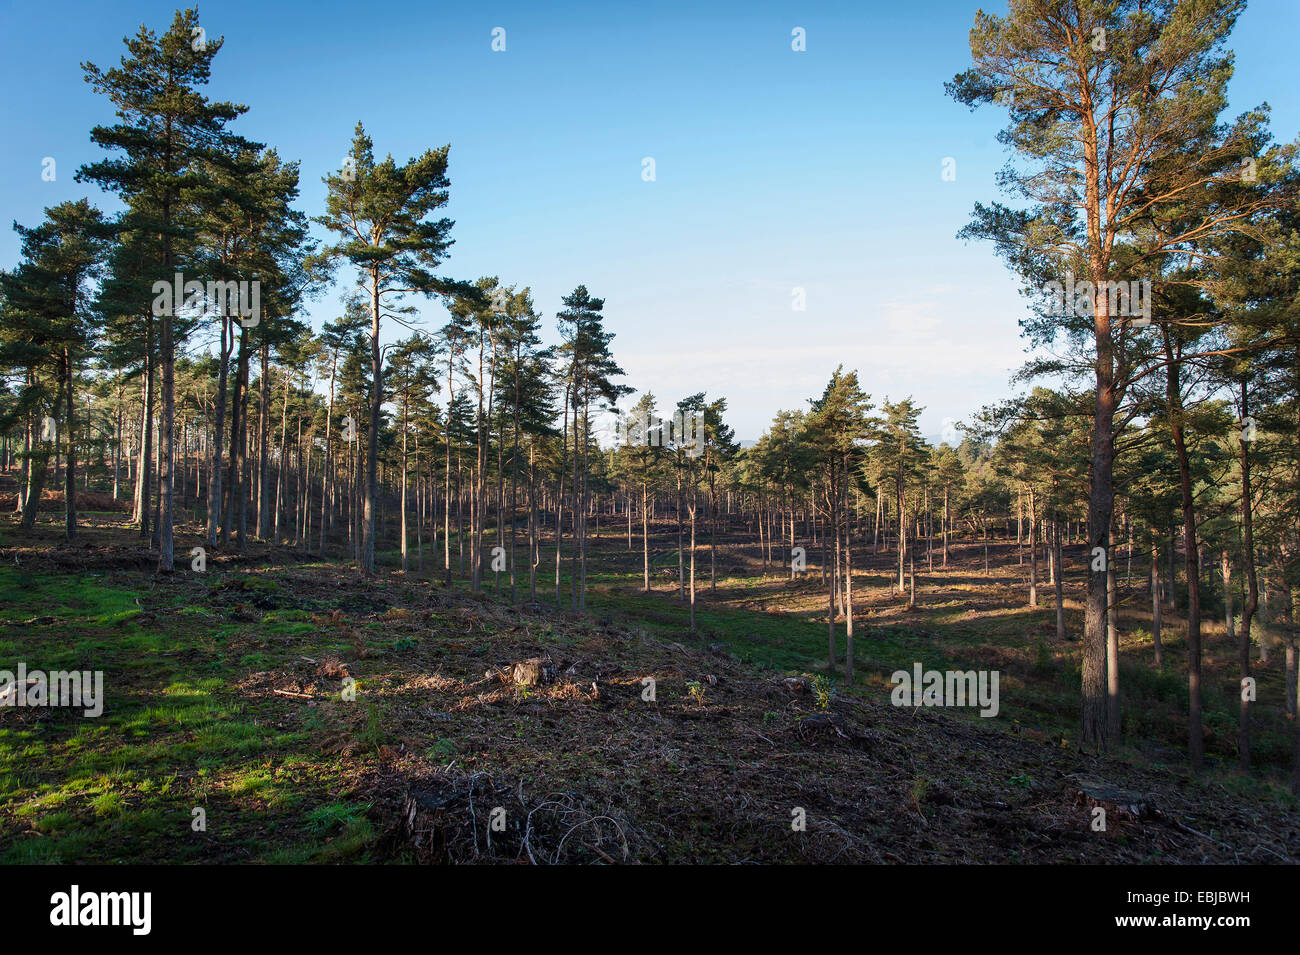 Conifer and birch woodland at Graffham Common, West Sussex, UK - Stock Image